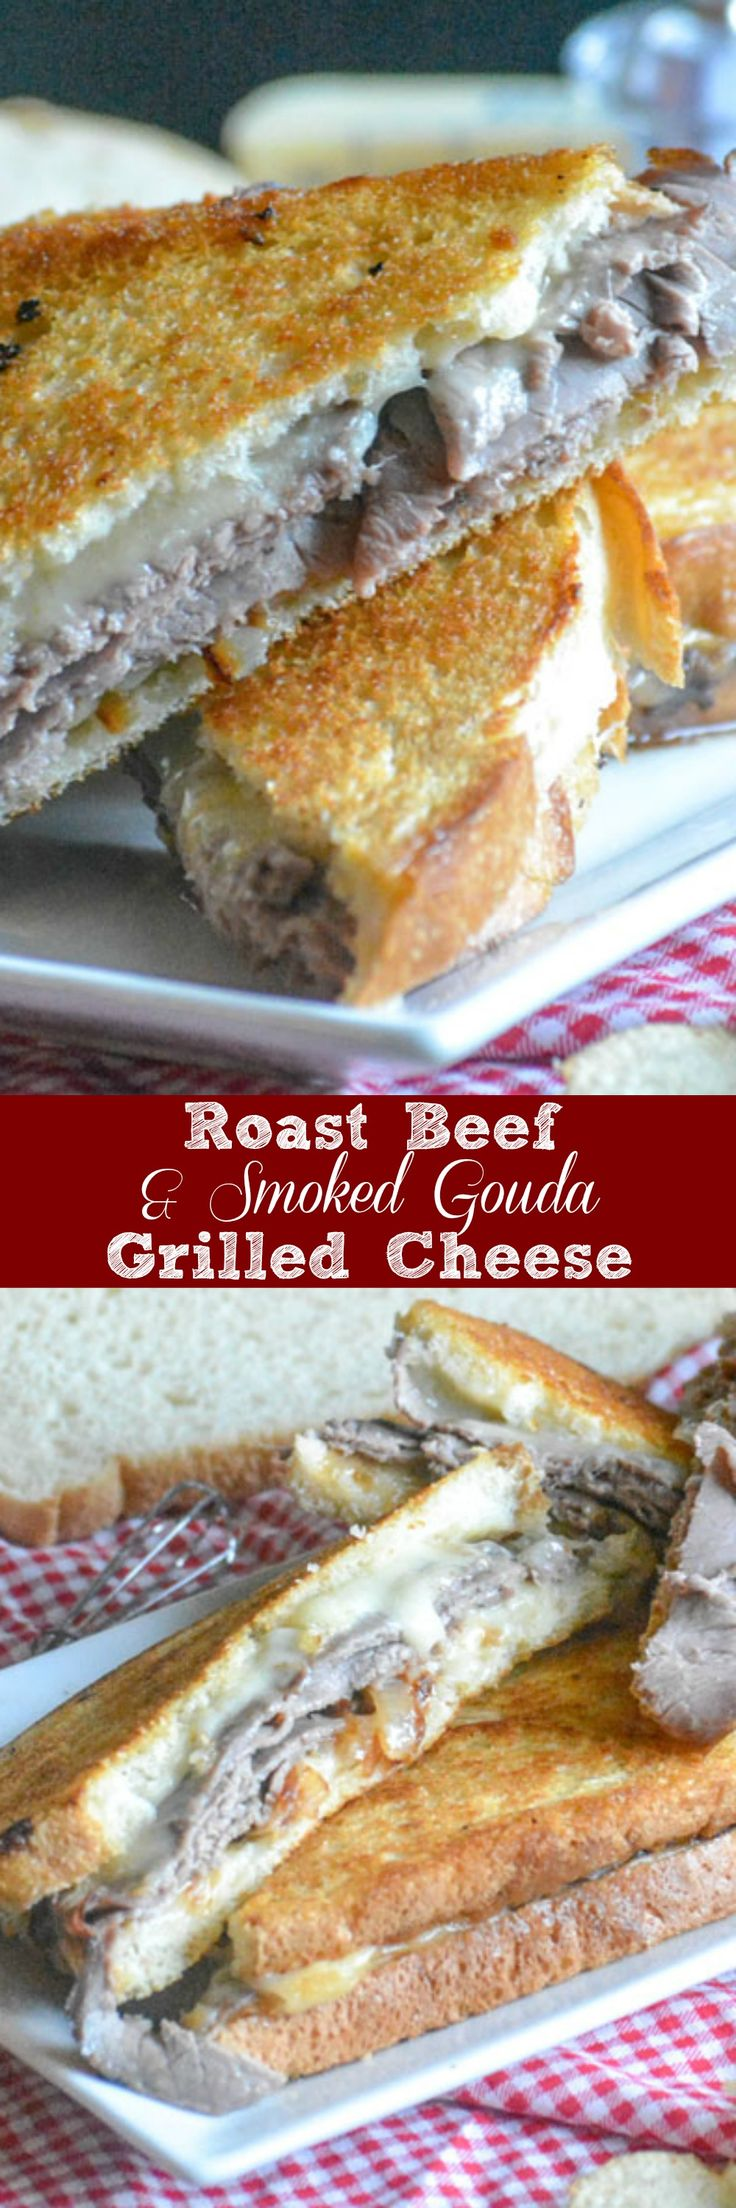 Roast Beef & Smoked Gouda Grilled Cheese | The grilled cheese you grew up with might not be enough to fill you up these days. No worries! This Roast Beef & Smoked Gouda Grilled cheese sandwich is hearty enough for the hungriest men in your life, whether it's lunch or dinner, and so good- that they might not believe you when you tell 'em it's homemade. | 4 Sons 'R' Us